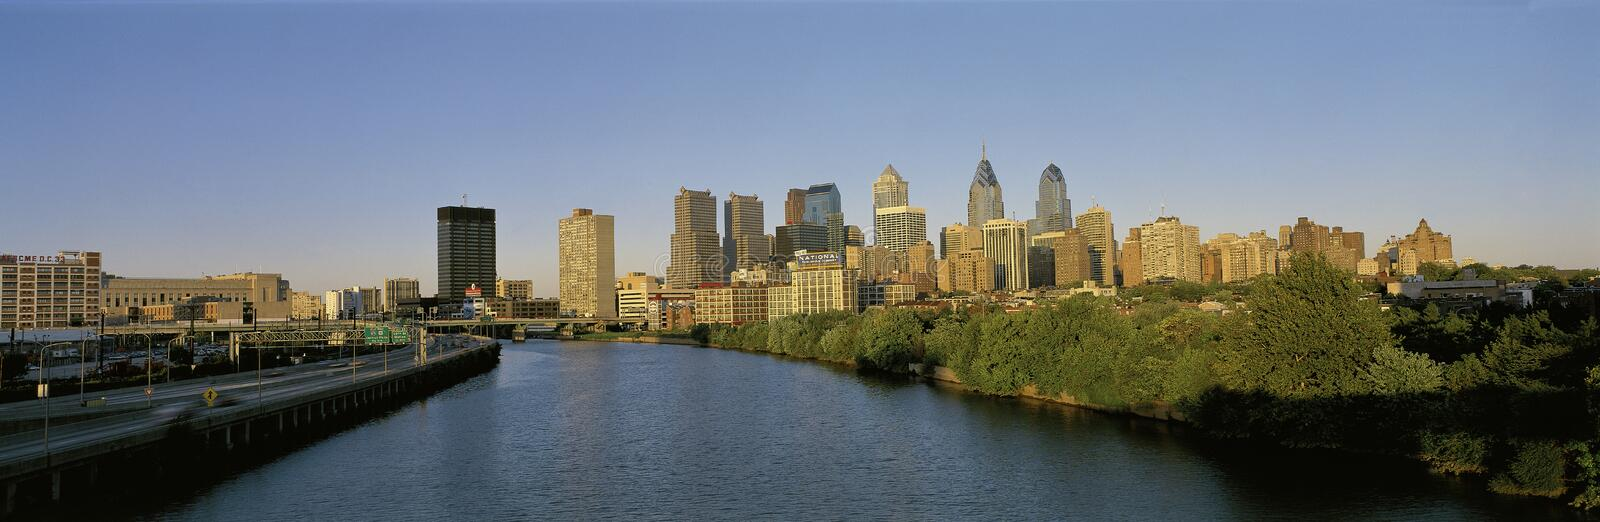 Philadelphia skyline with Schuylkill River. This is the Philadelphia skyline from the Schuylkill River at sunset stock photo